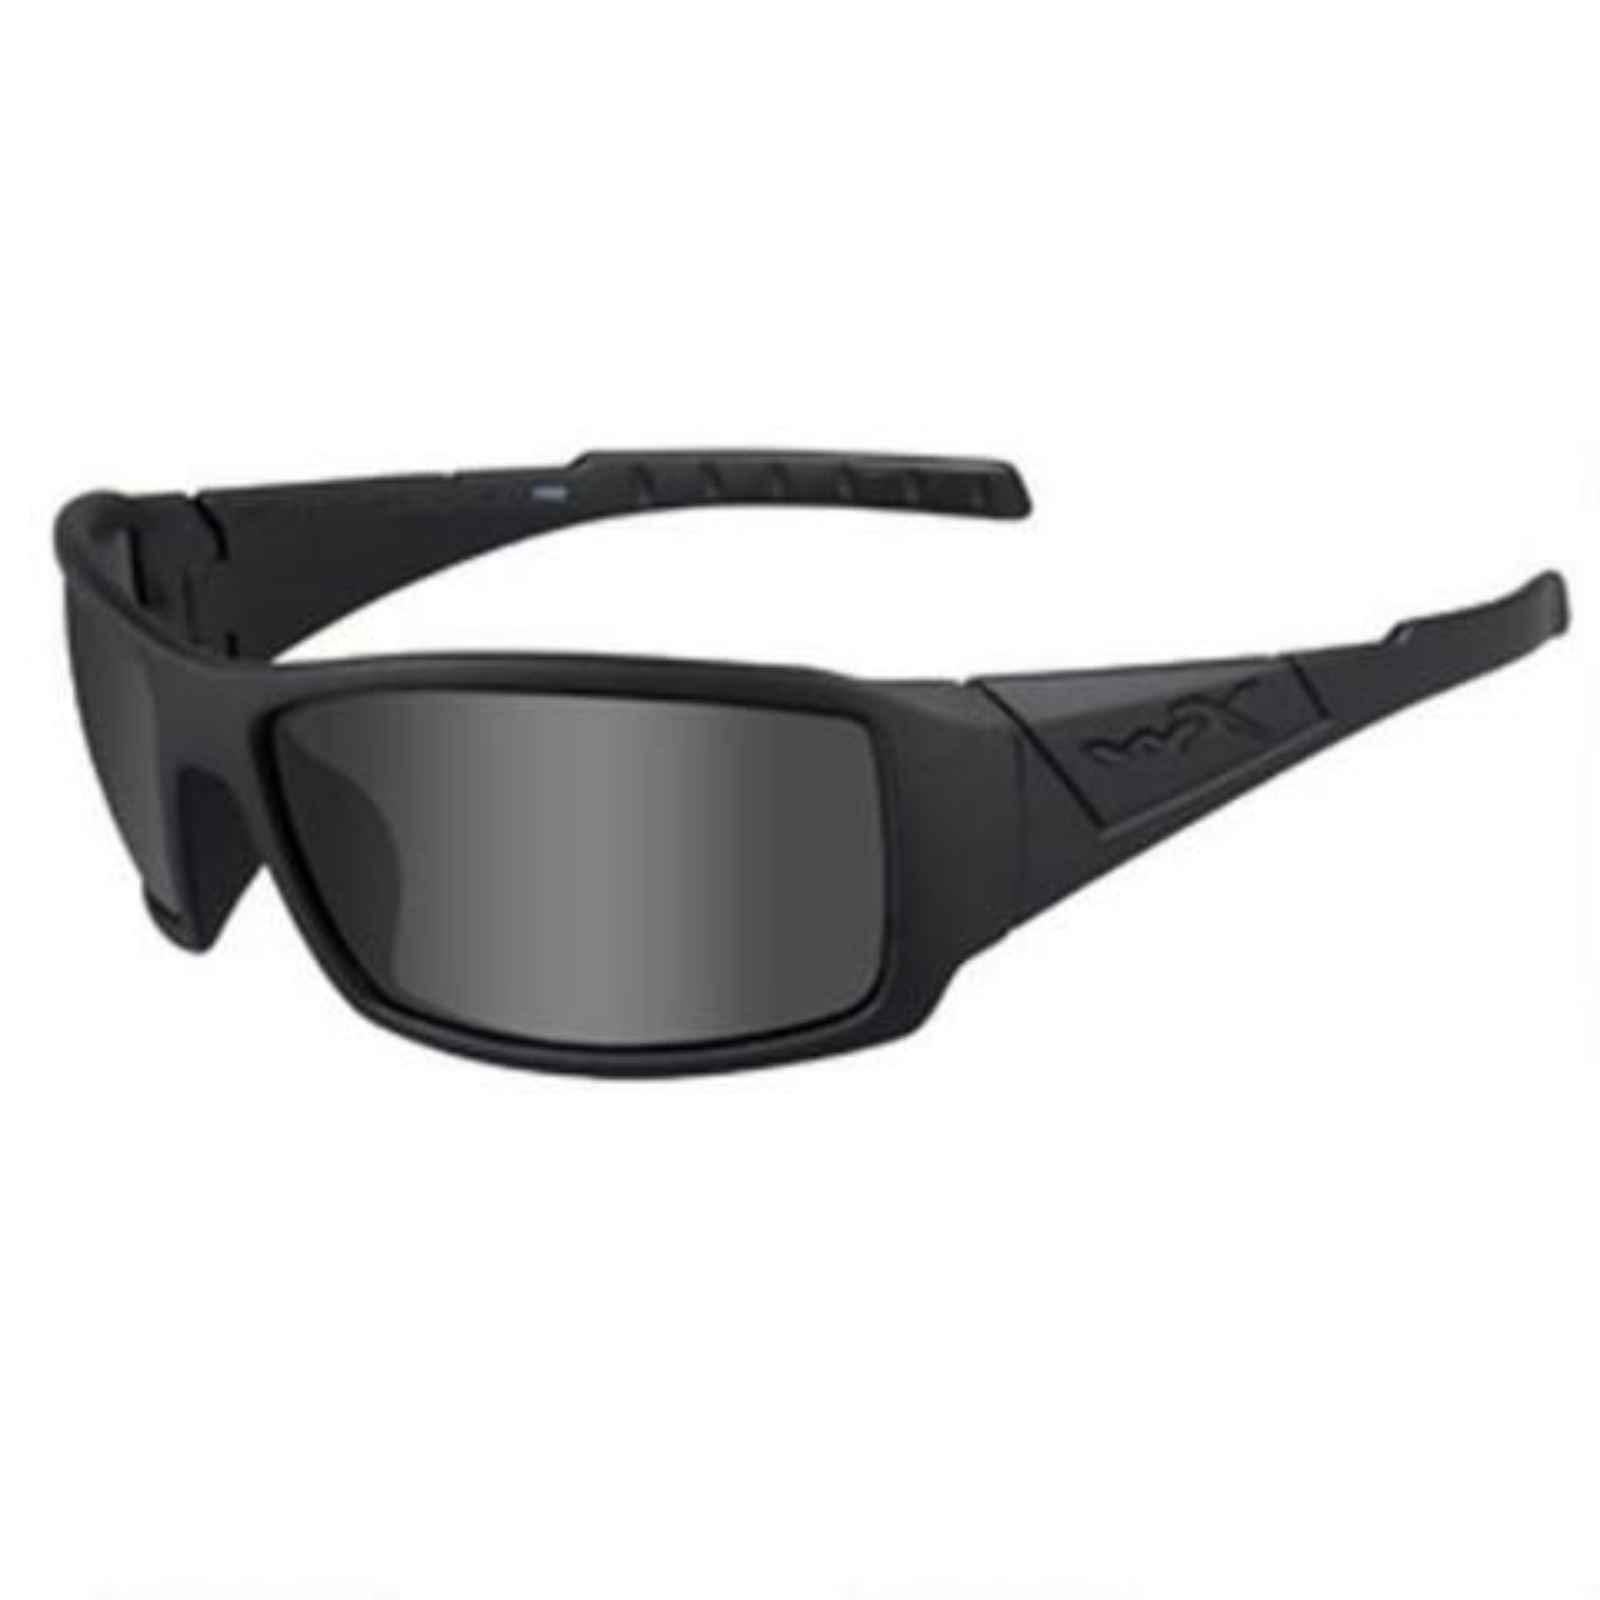 Wiley X SSTWI08 Twisted, Matte Black Frame, Polarized Smoke Gray Lens Polarized Sunglasses for Military Men for Military Women